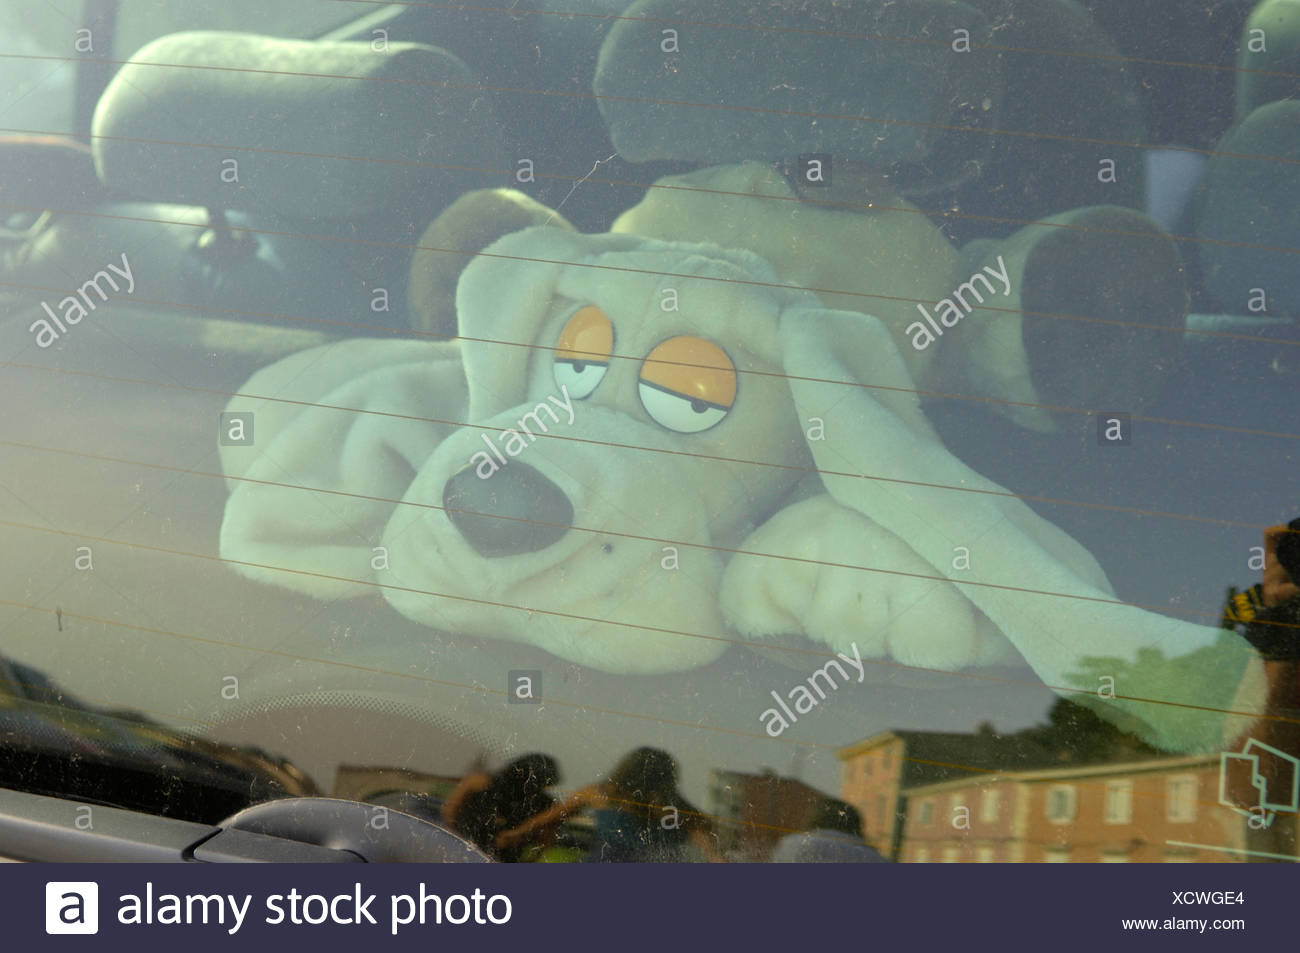 soft toy behind rear window - Stock Image